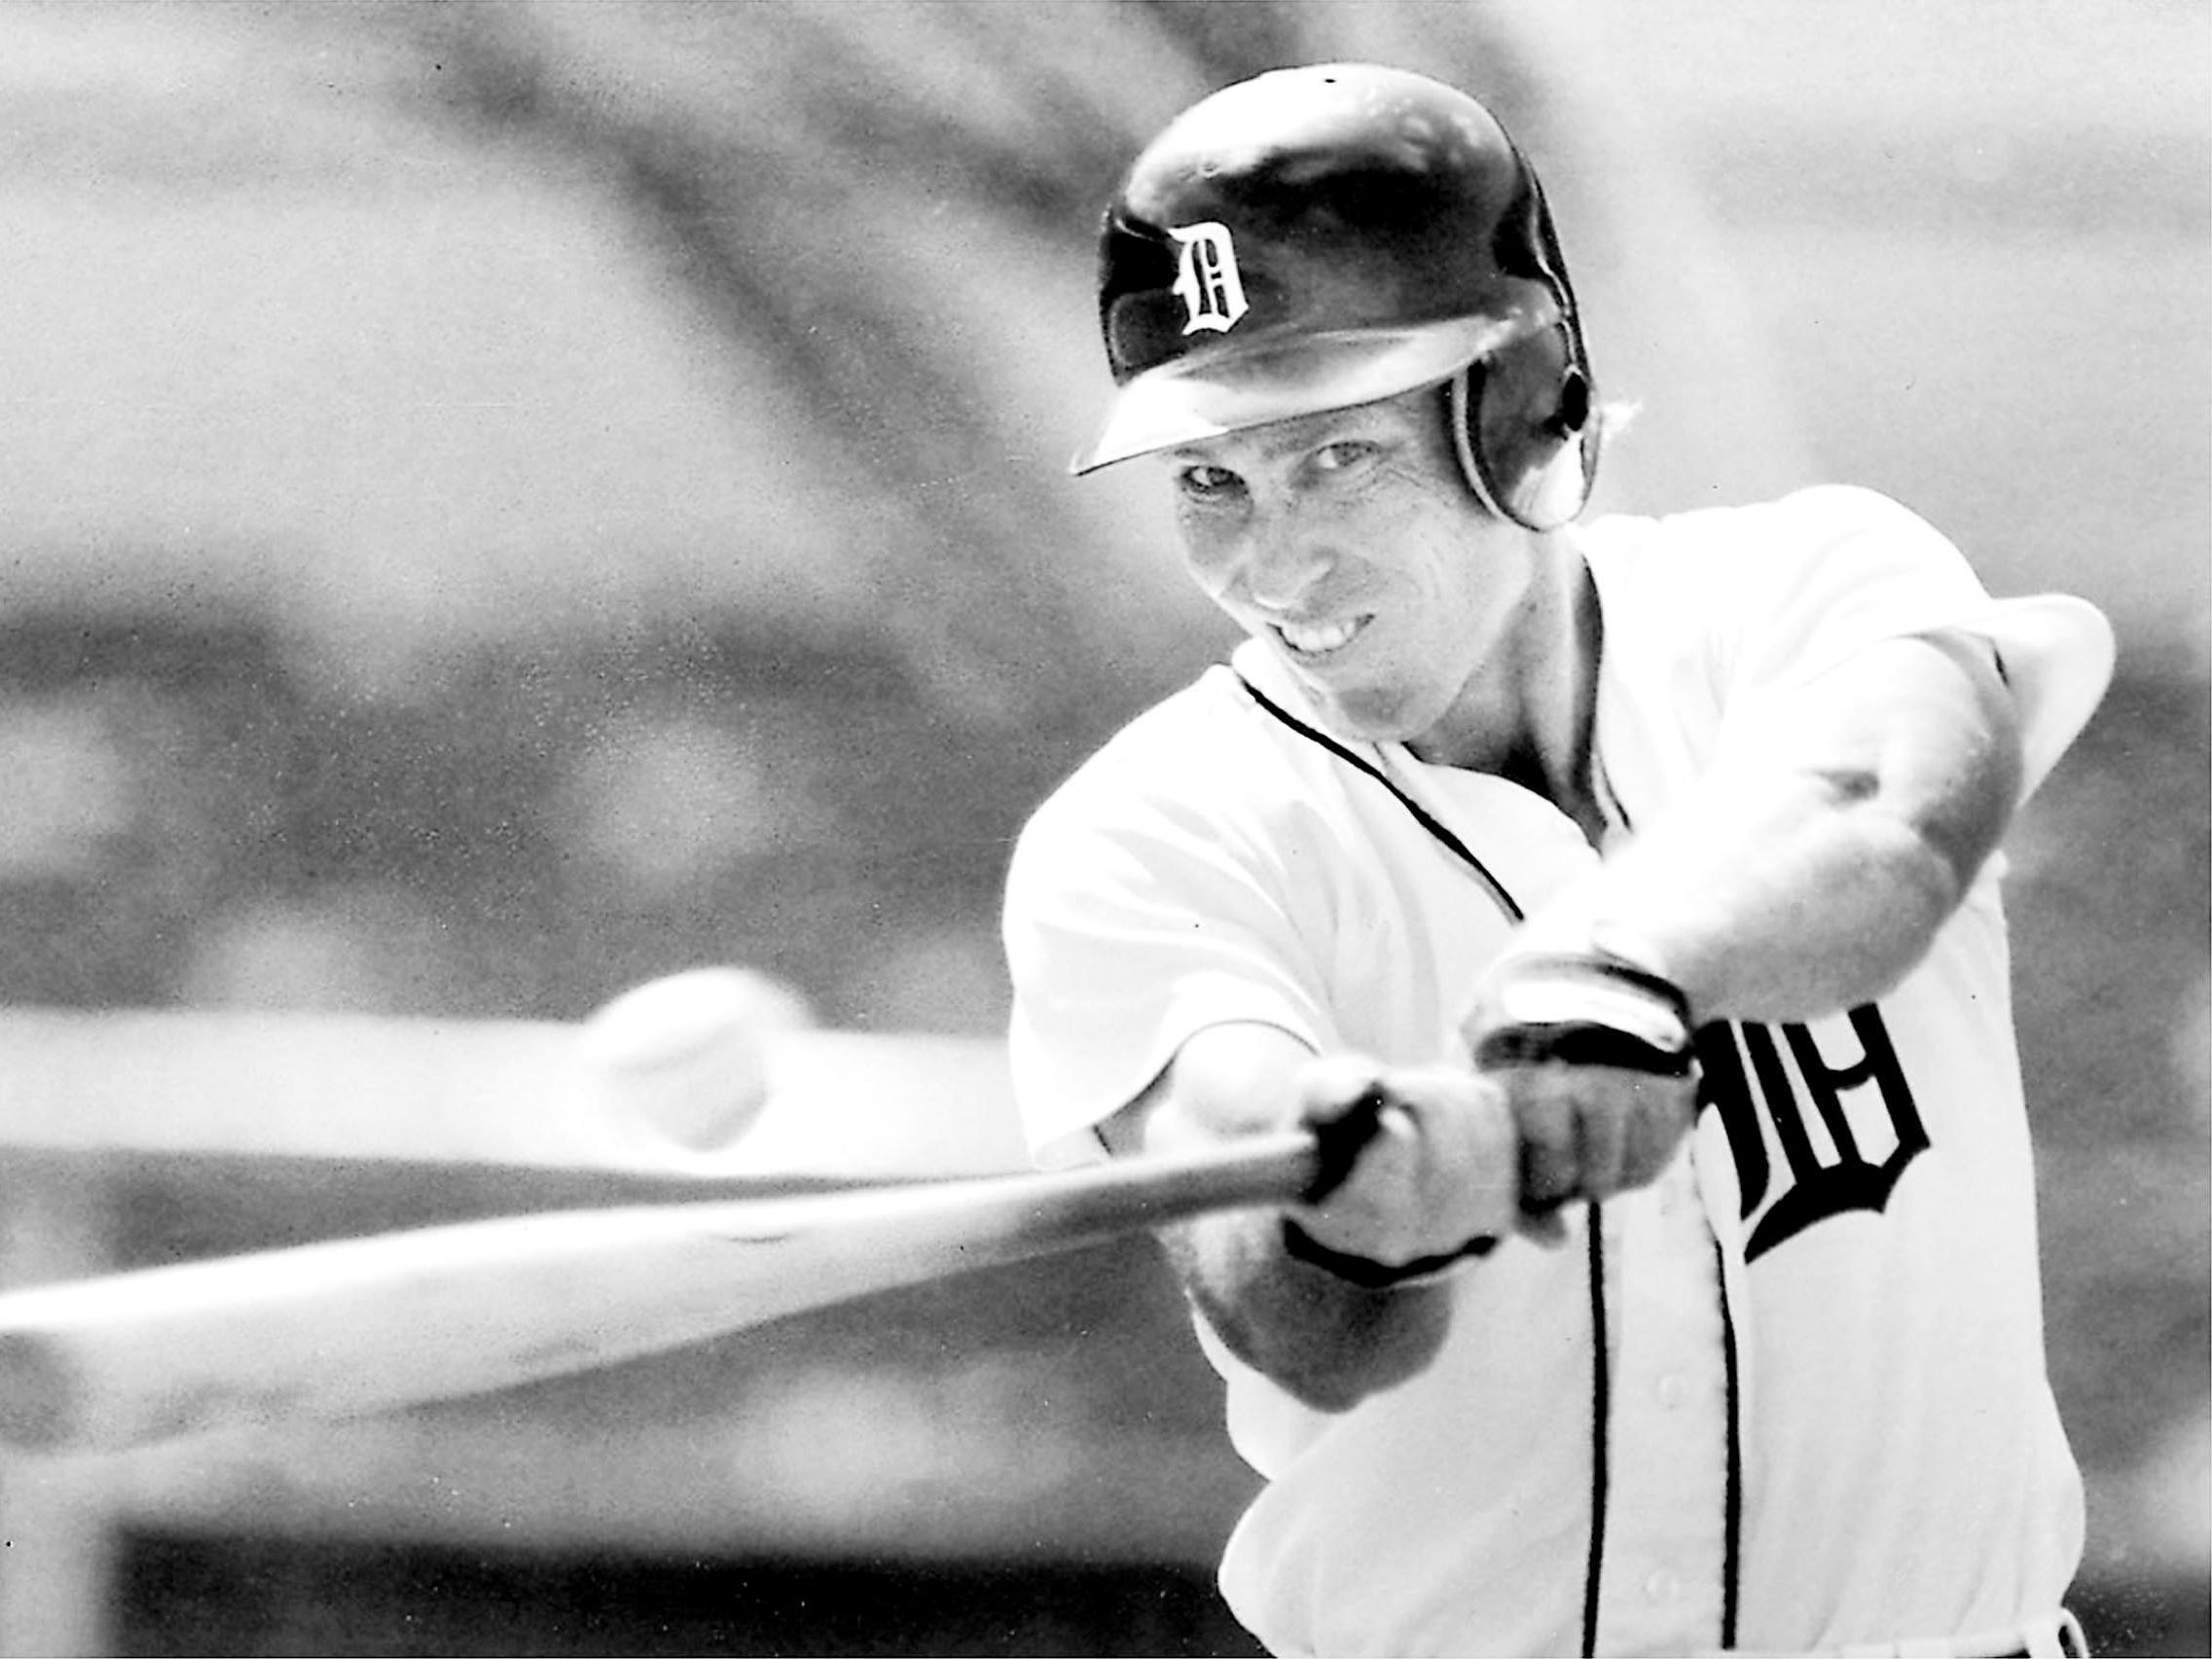 DETROIT TIGERS: Alan Trammell, SS, No. 3 (player, 1977-96; manager, 2003-05)